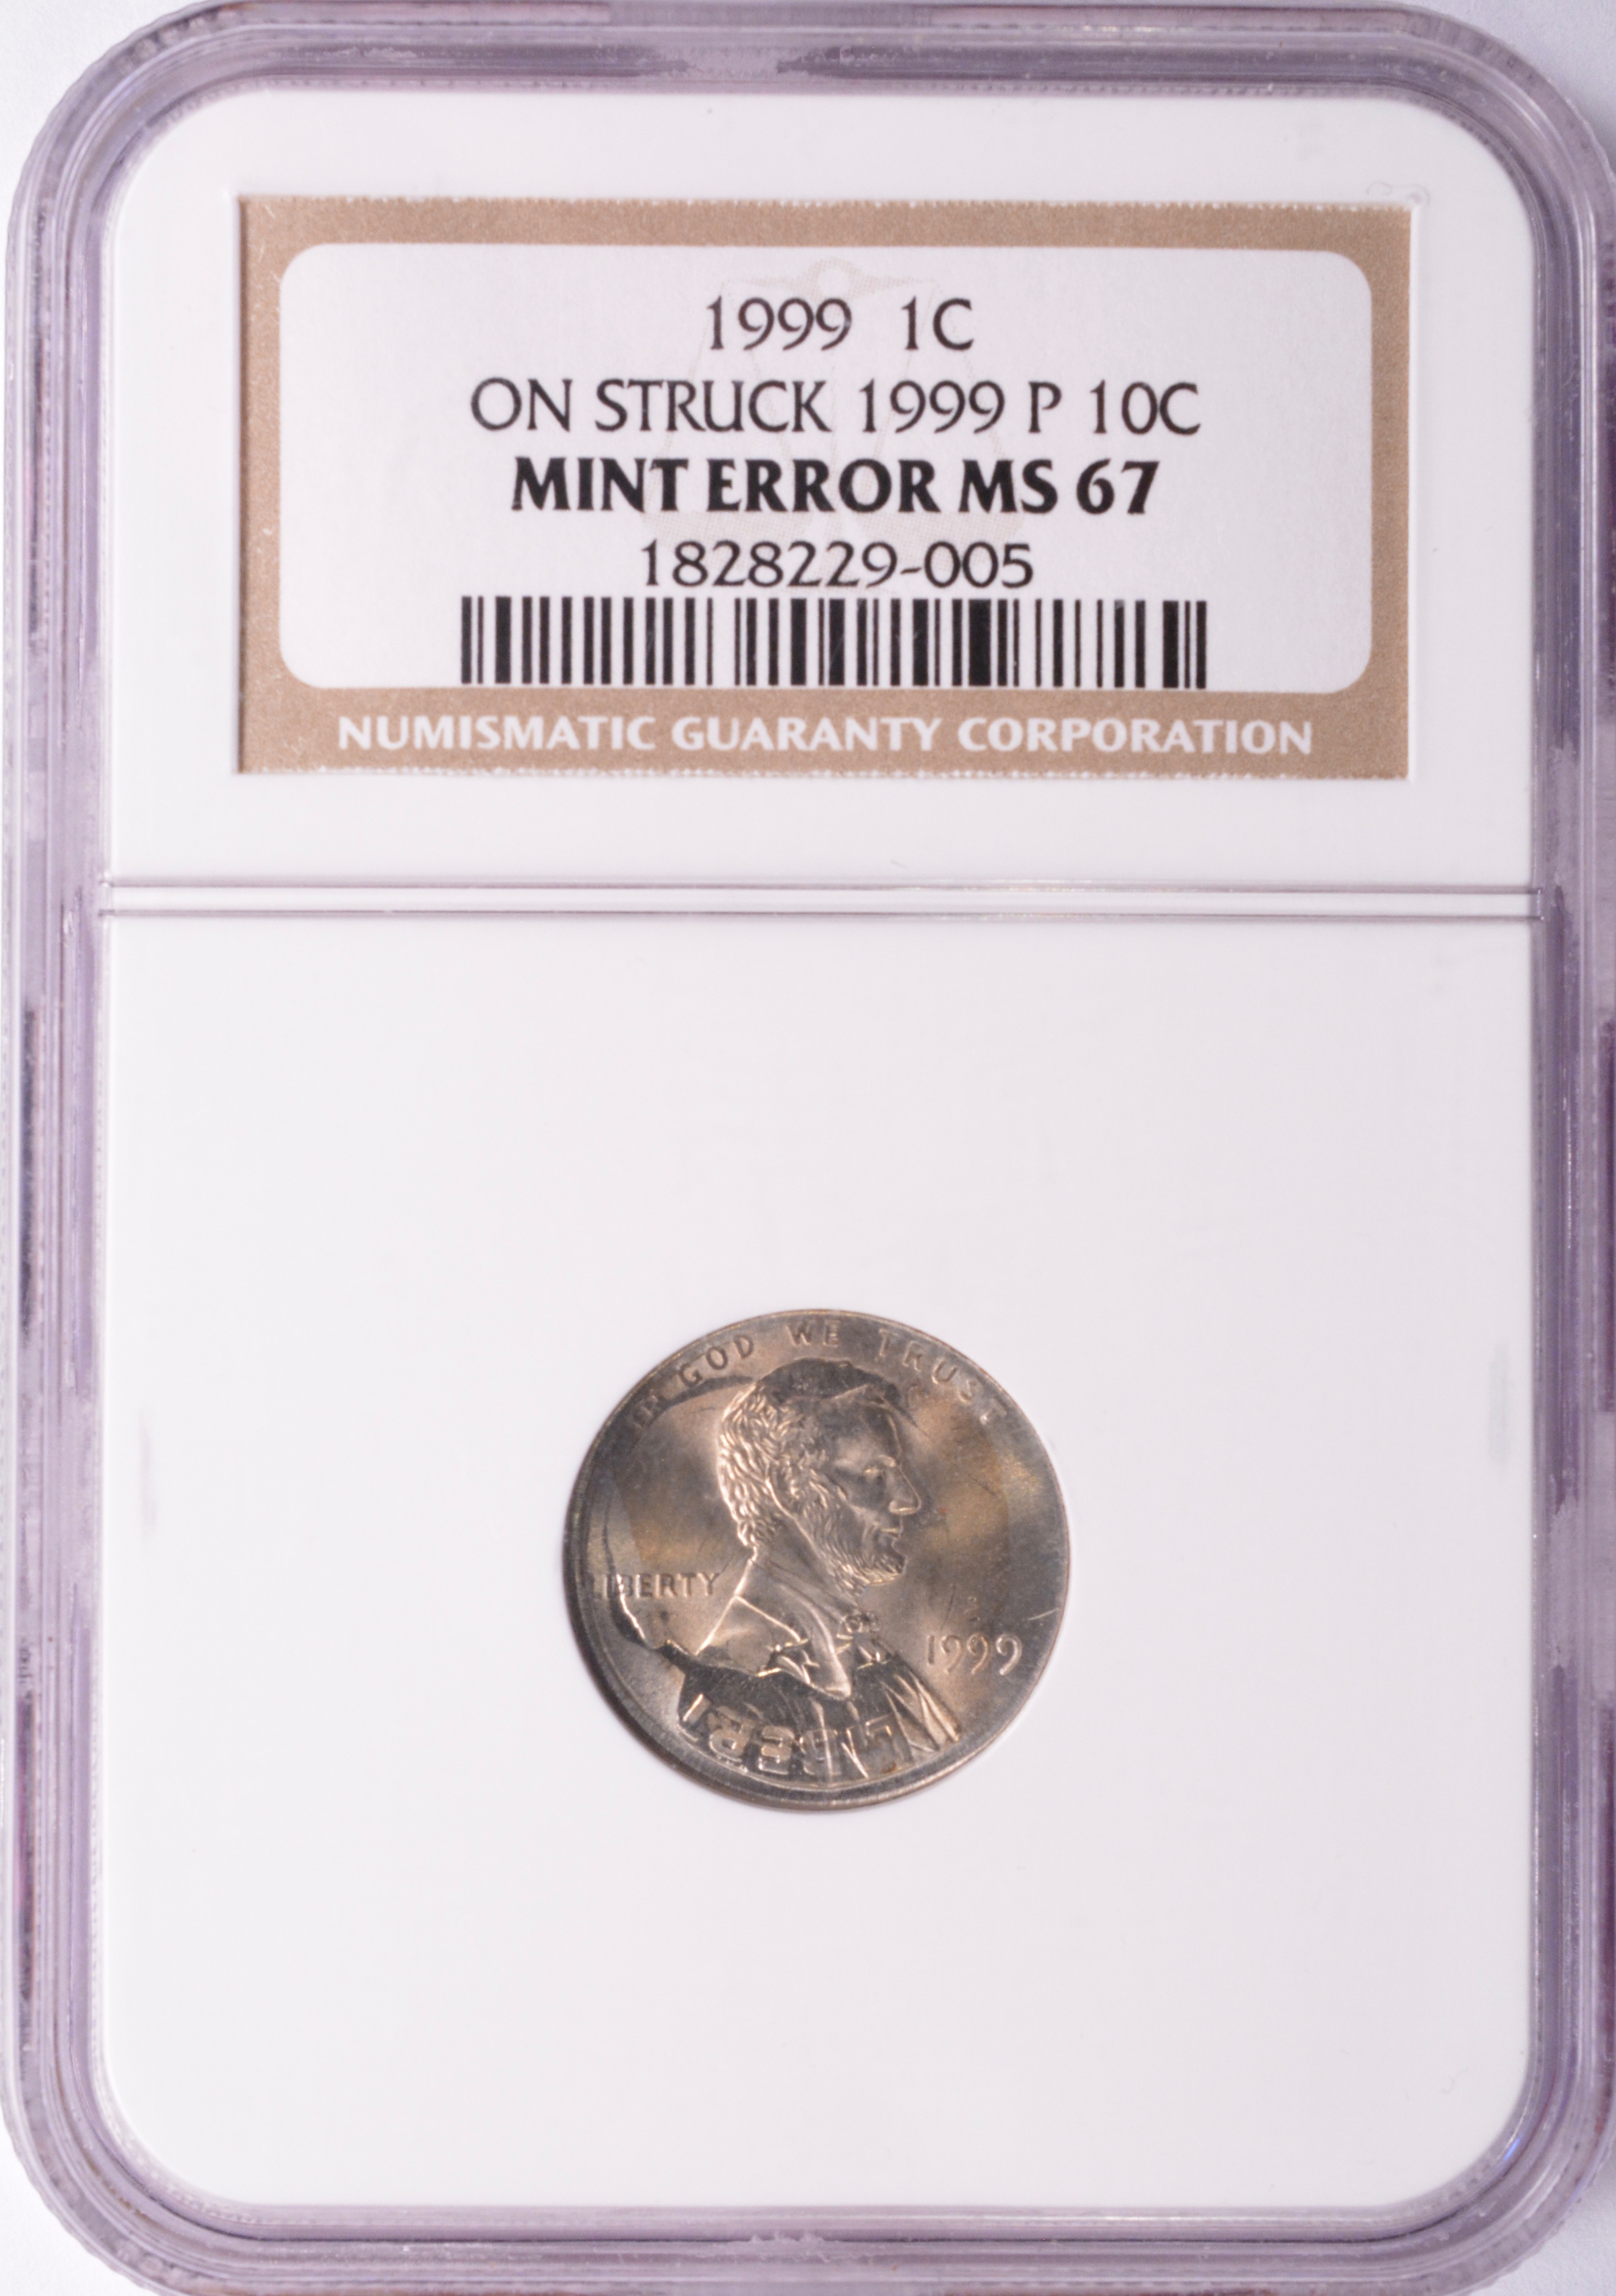 NGC 1c 1999 Lincoln Cent on 1999 Dime Double-Denomination MS